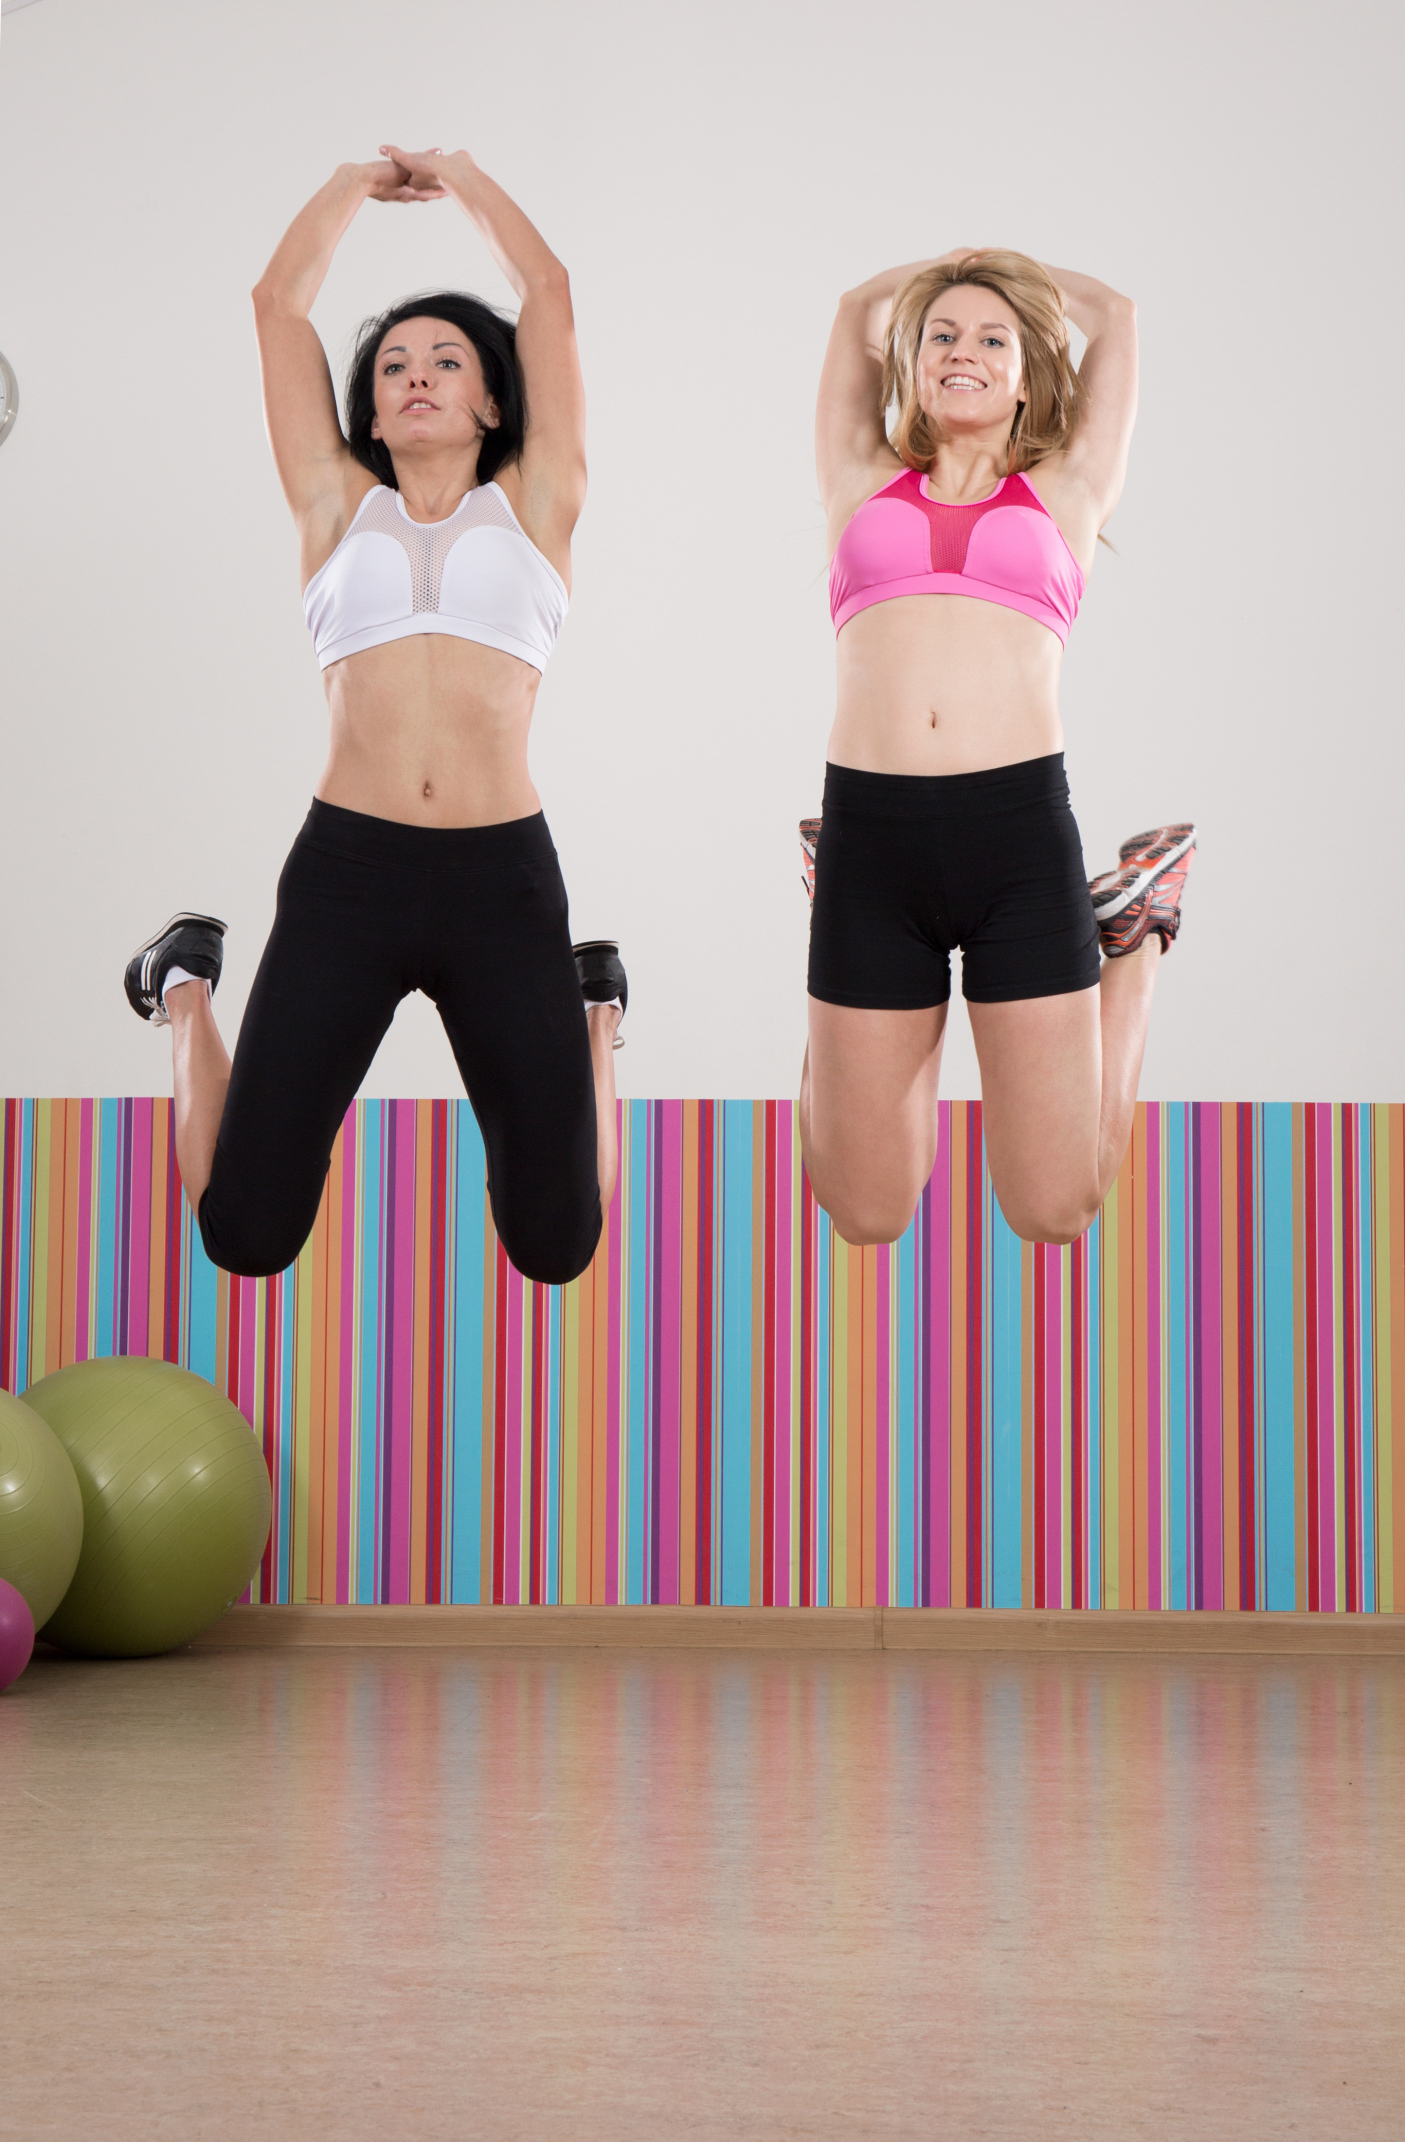 How to Increase Your Vertical Jump in Two Weeks